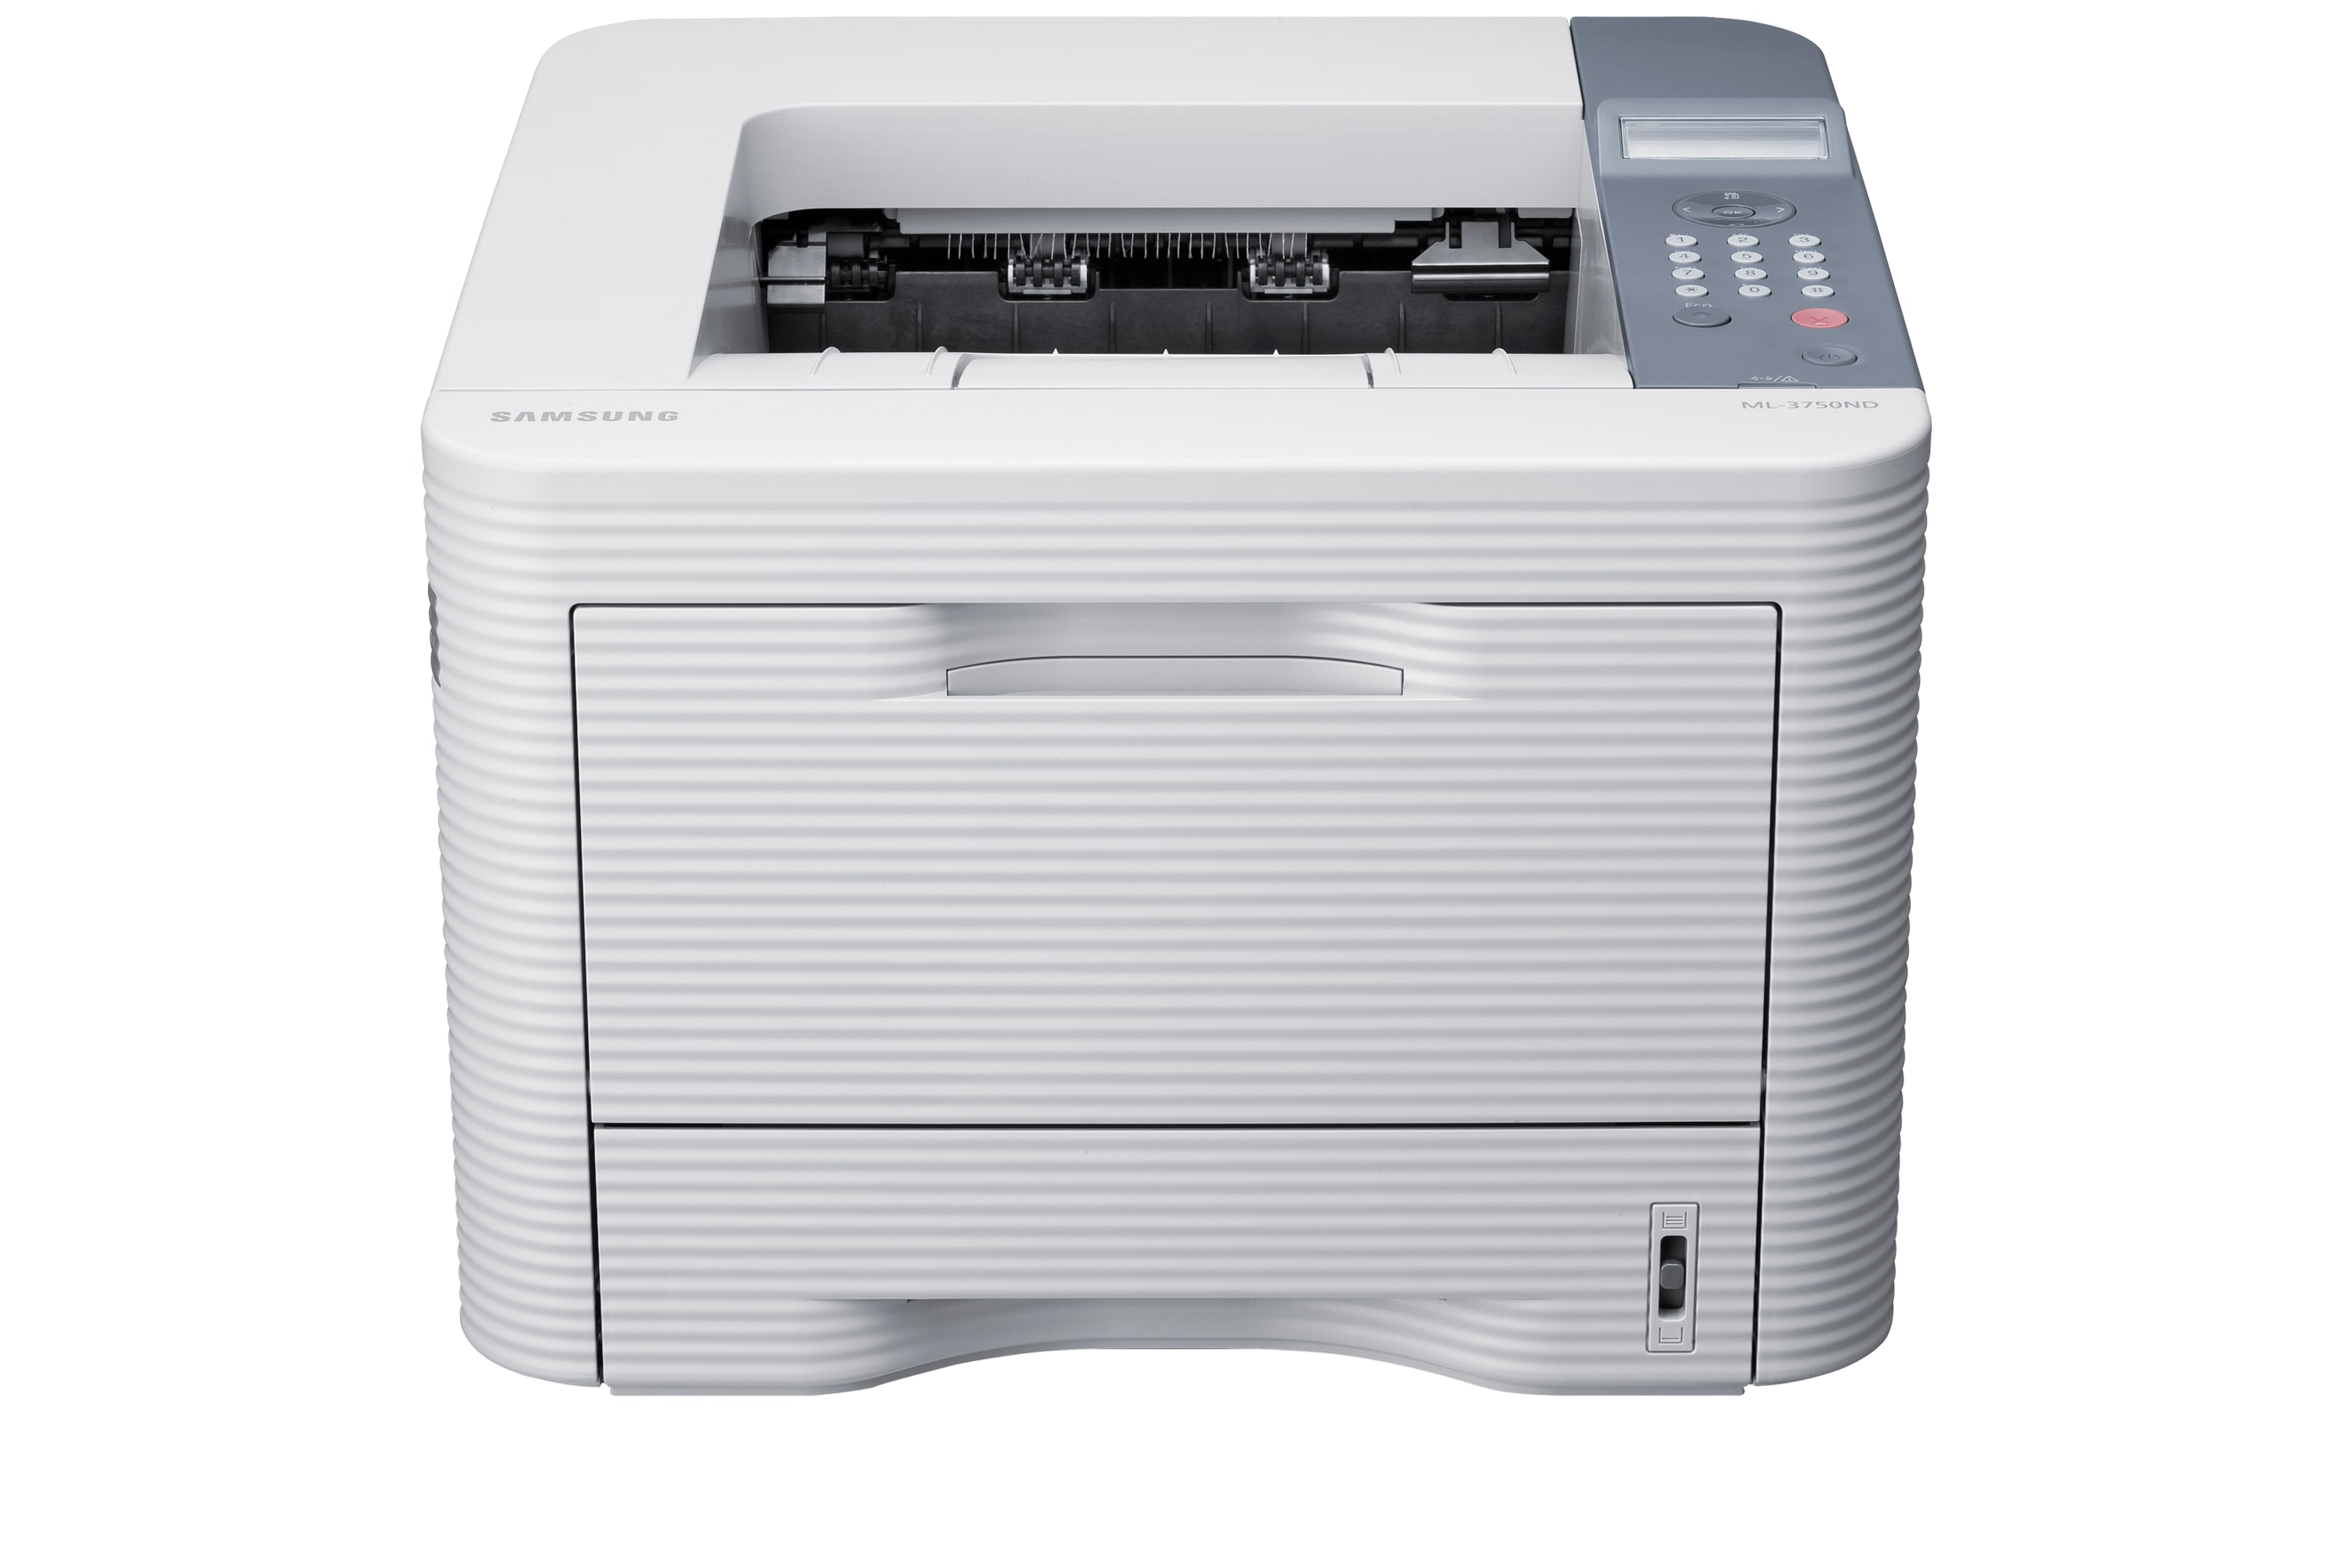 ML-3750ND 35PPM Black & White Laser Printer